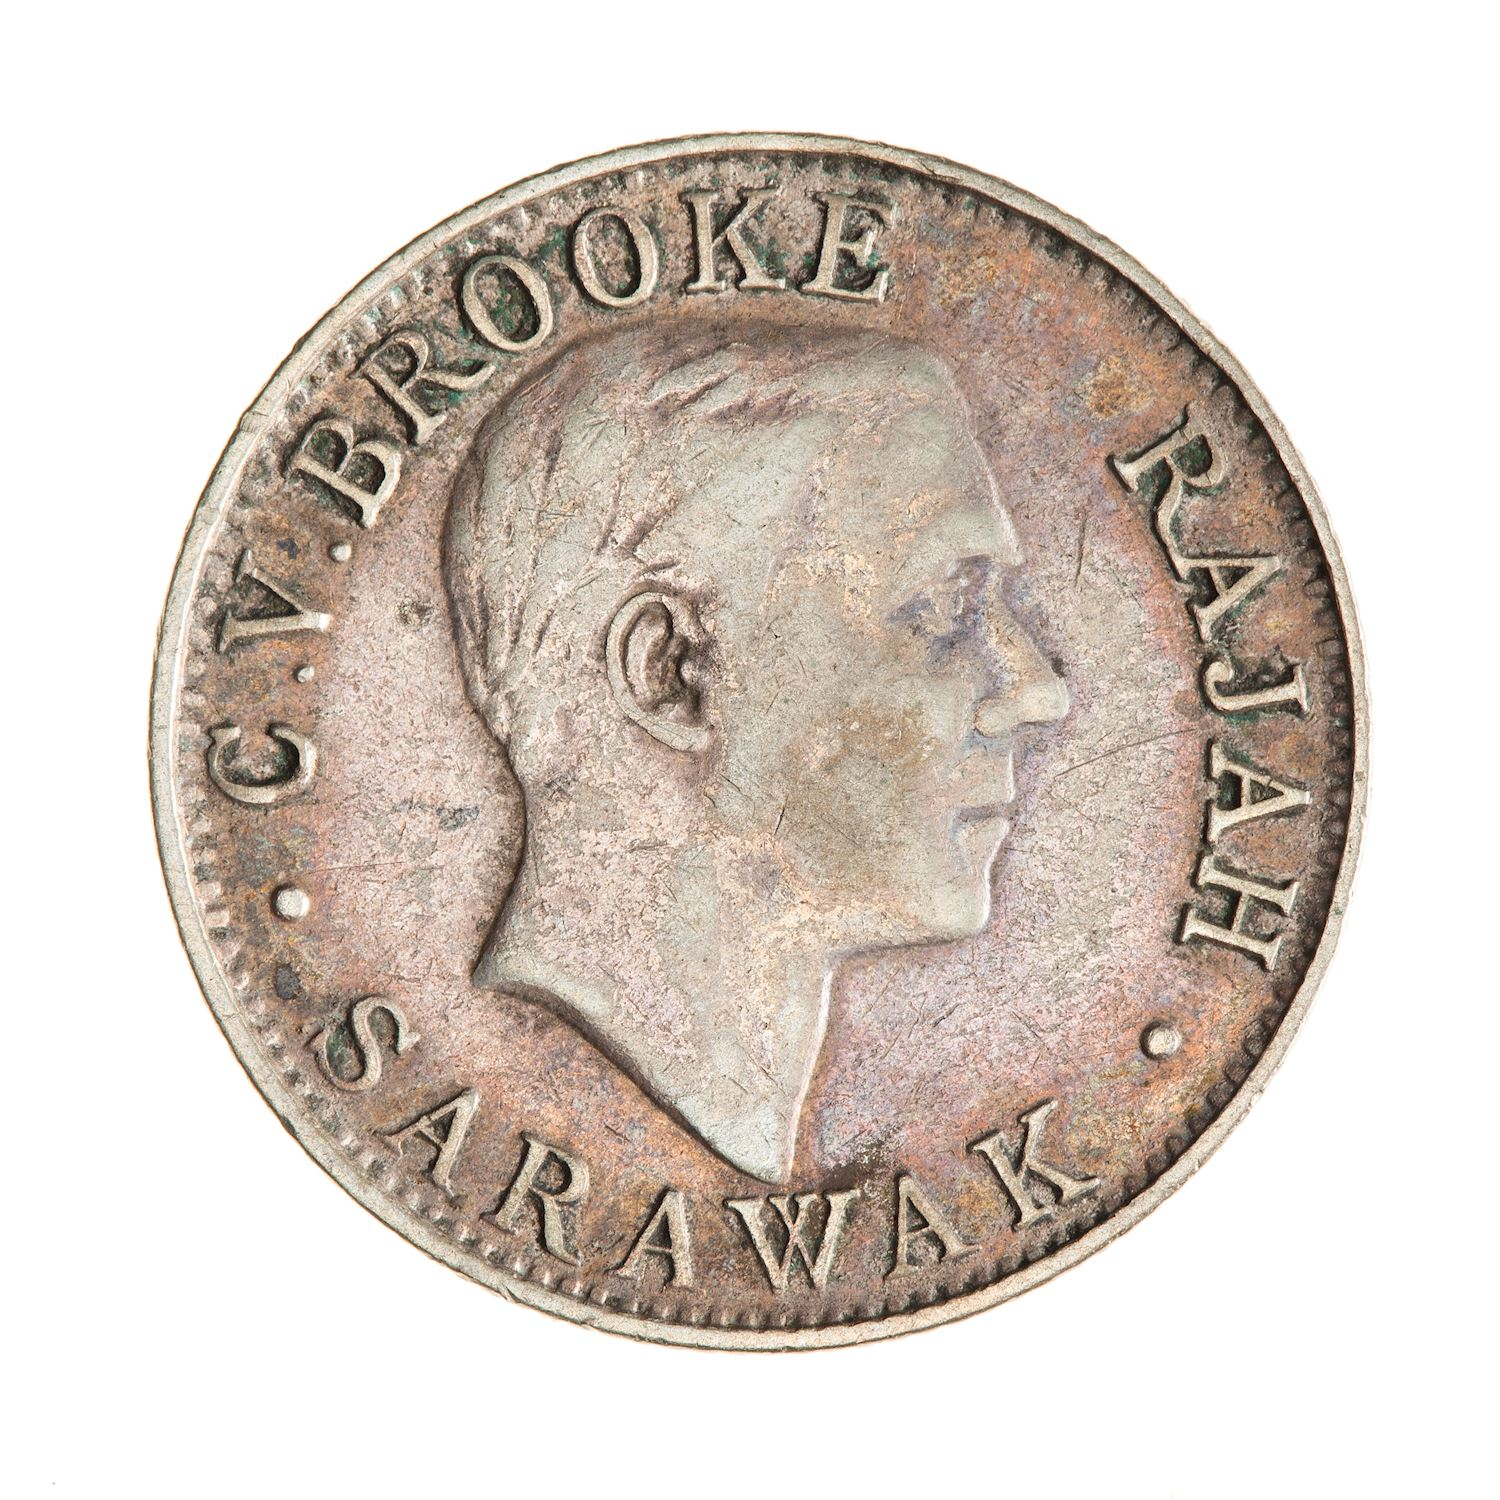 Twenty Cents 1927: Photo Coin - 20 Cents, Sarawak, 1927